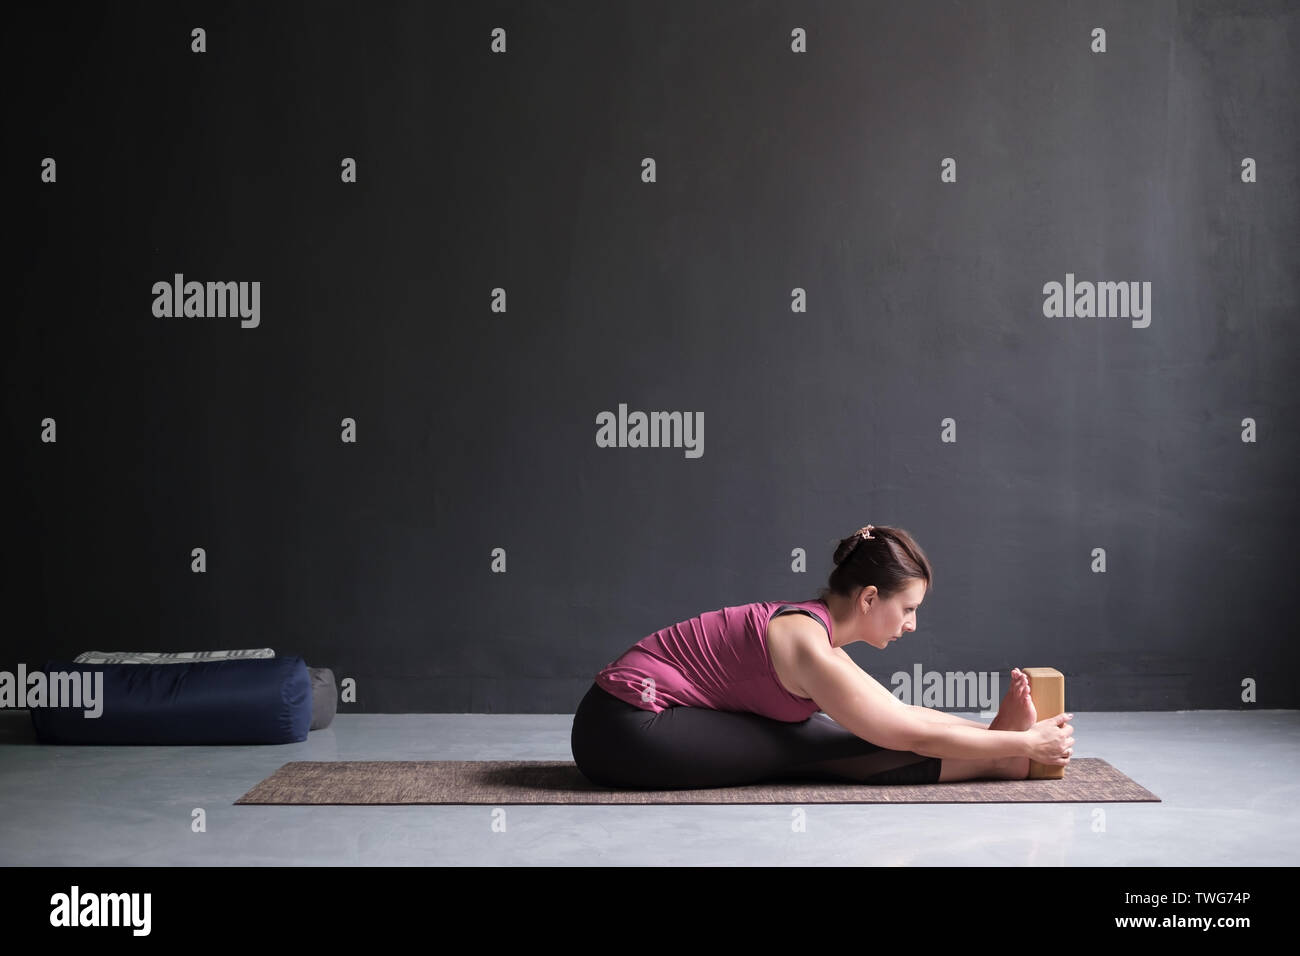 Woman practicing yoga, doing Seated forward bend pos - Stock Image